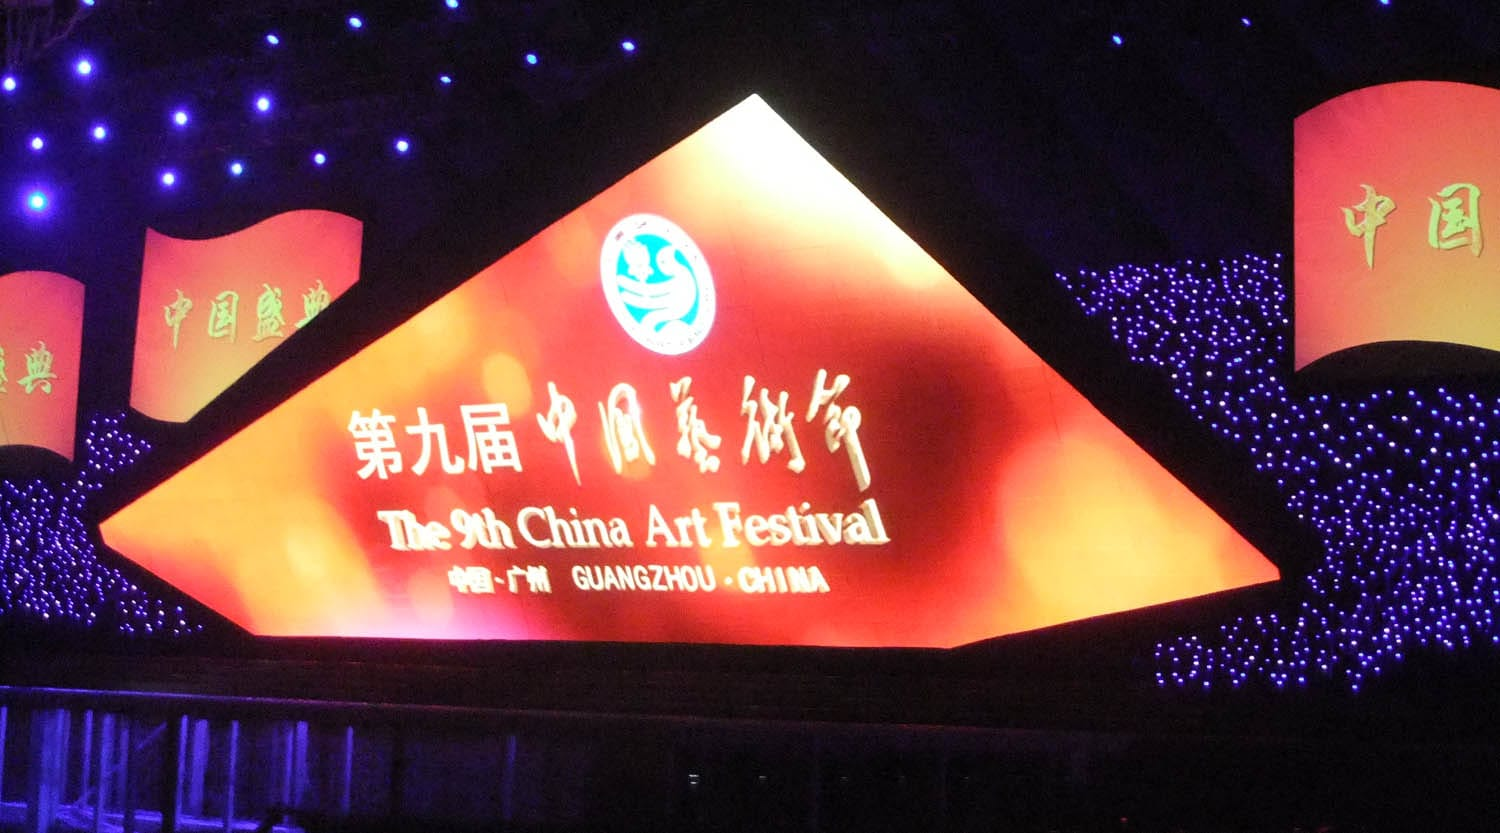 China Arts Festival Summit 2010 Guangzhou Baiyuan Conference Centre stage